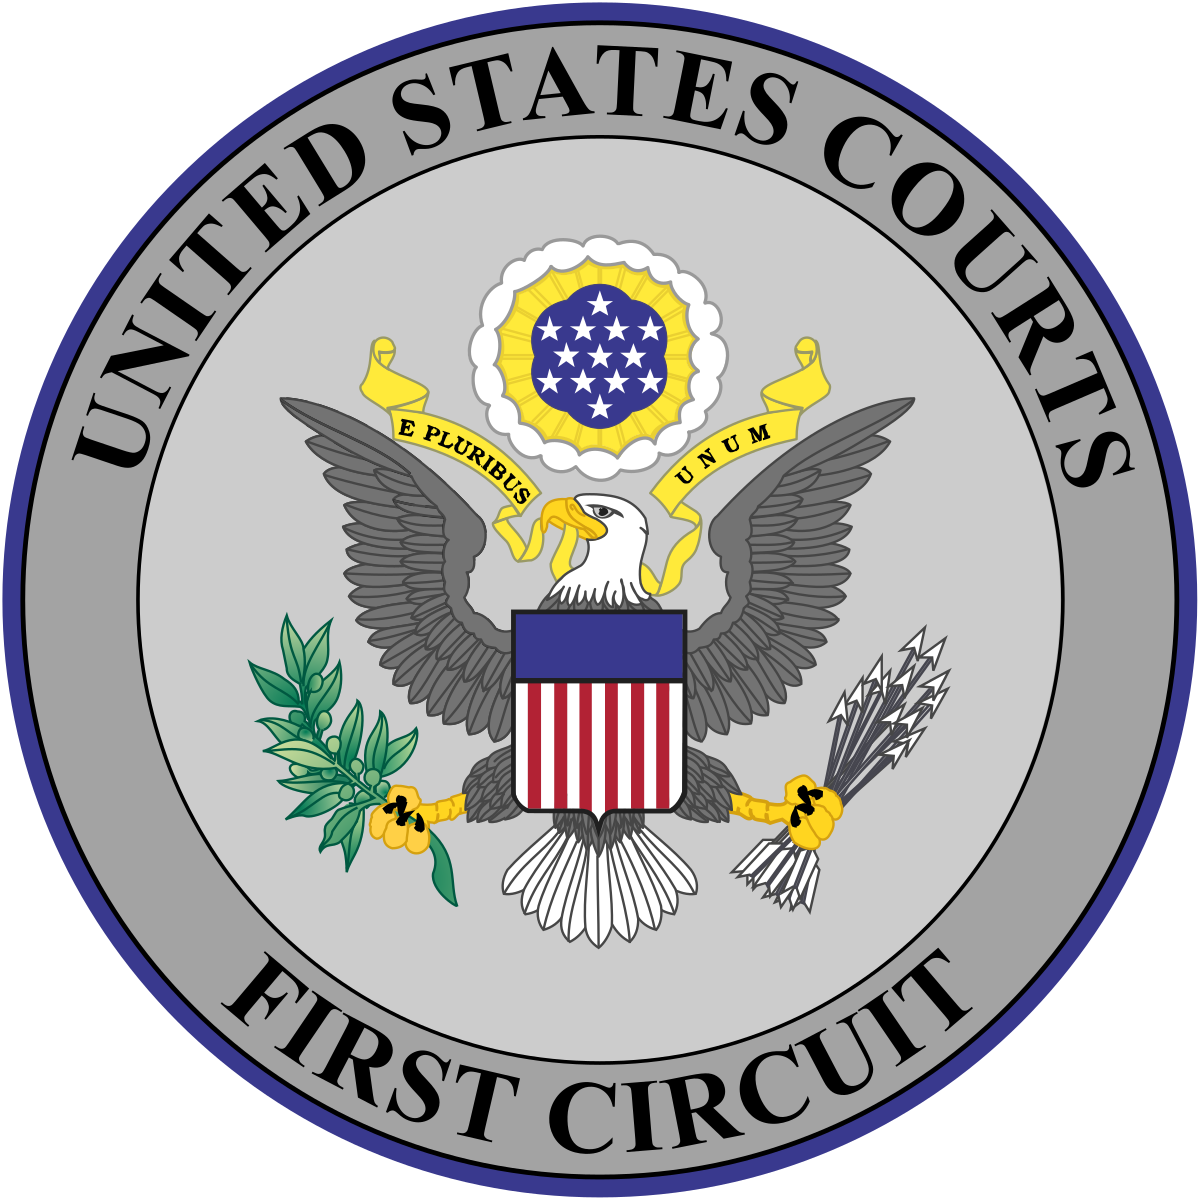 U.S. Court of Appeals for the First Circuit